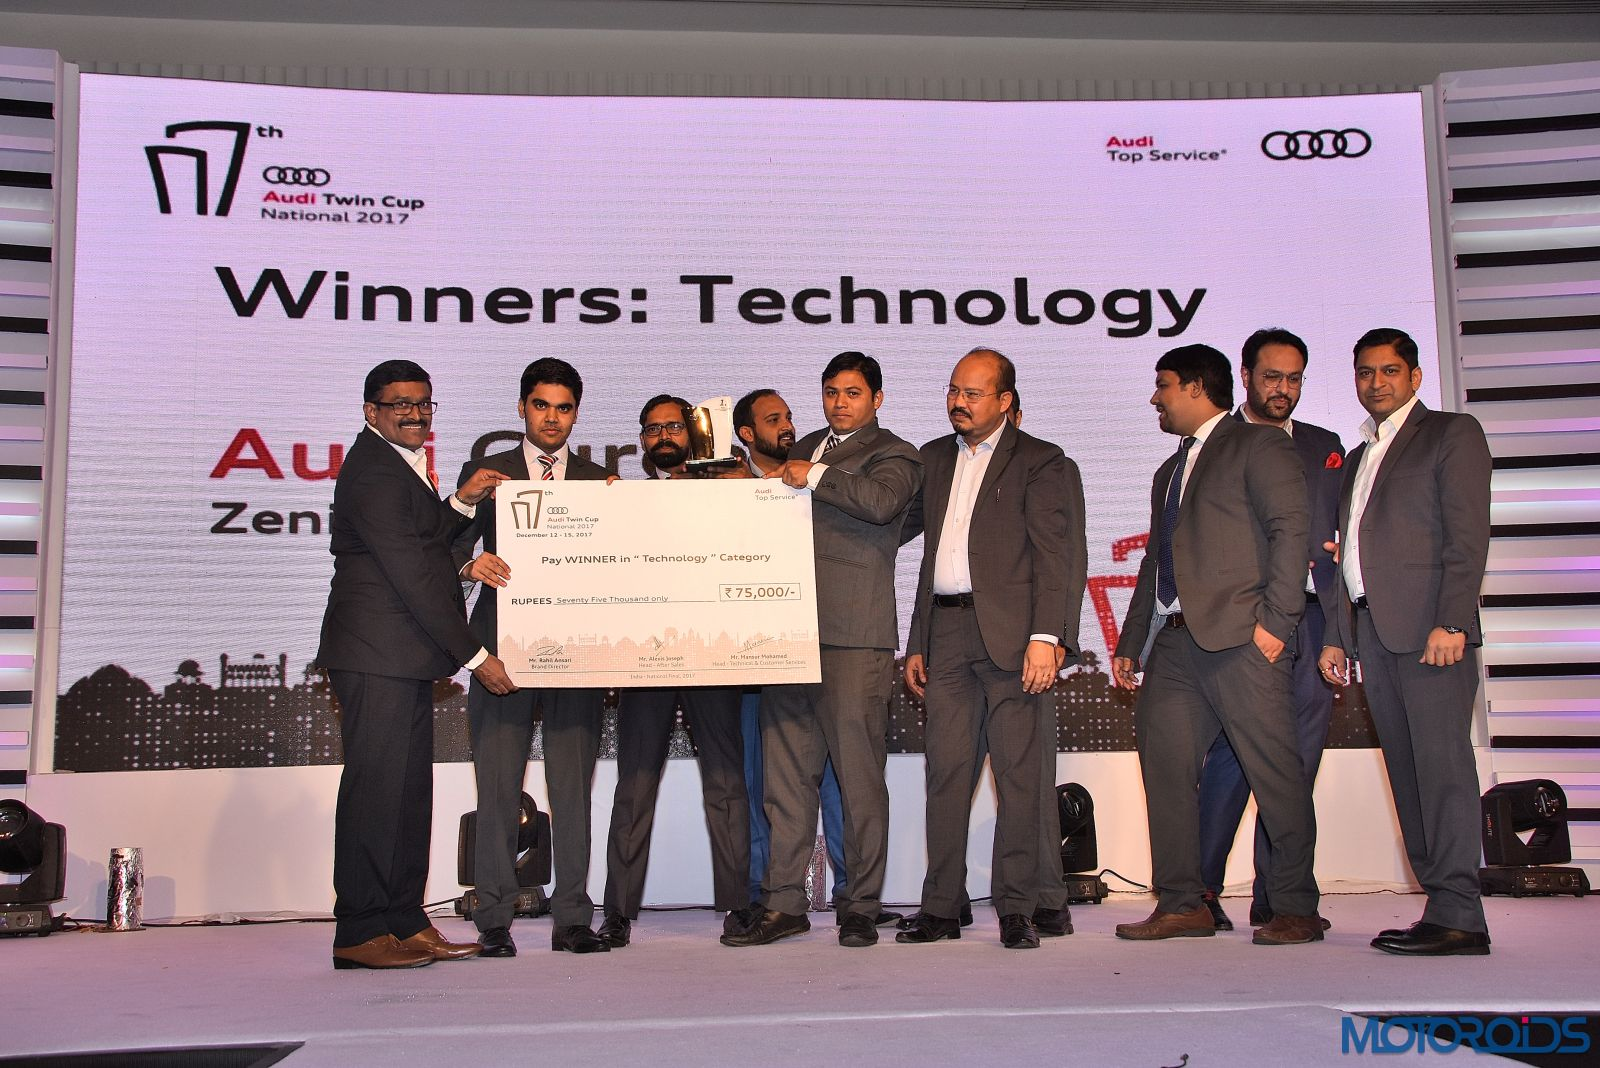 Audi-Gurgaon-winner-in-Technology-Category-receiving-the-Audi-Twin-Cup-trophy-at-the-Seventh-edition-of-the-national-Audi-Twin-Cup